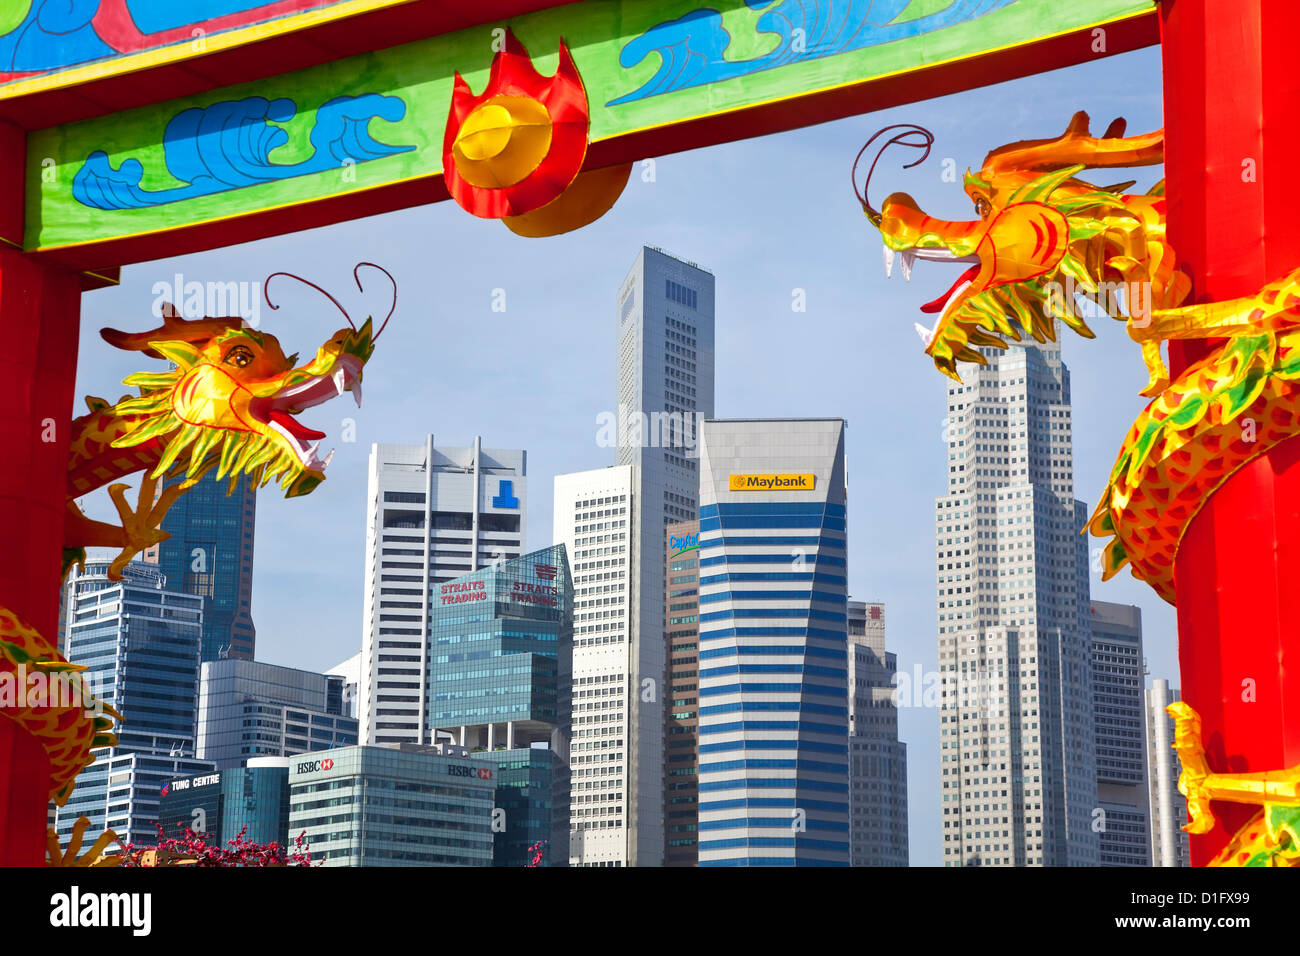 Ville et quartier des affaires, Singapour, Asie du Sud, Asie Photo Stock